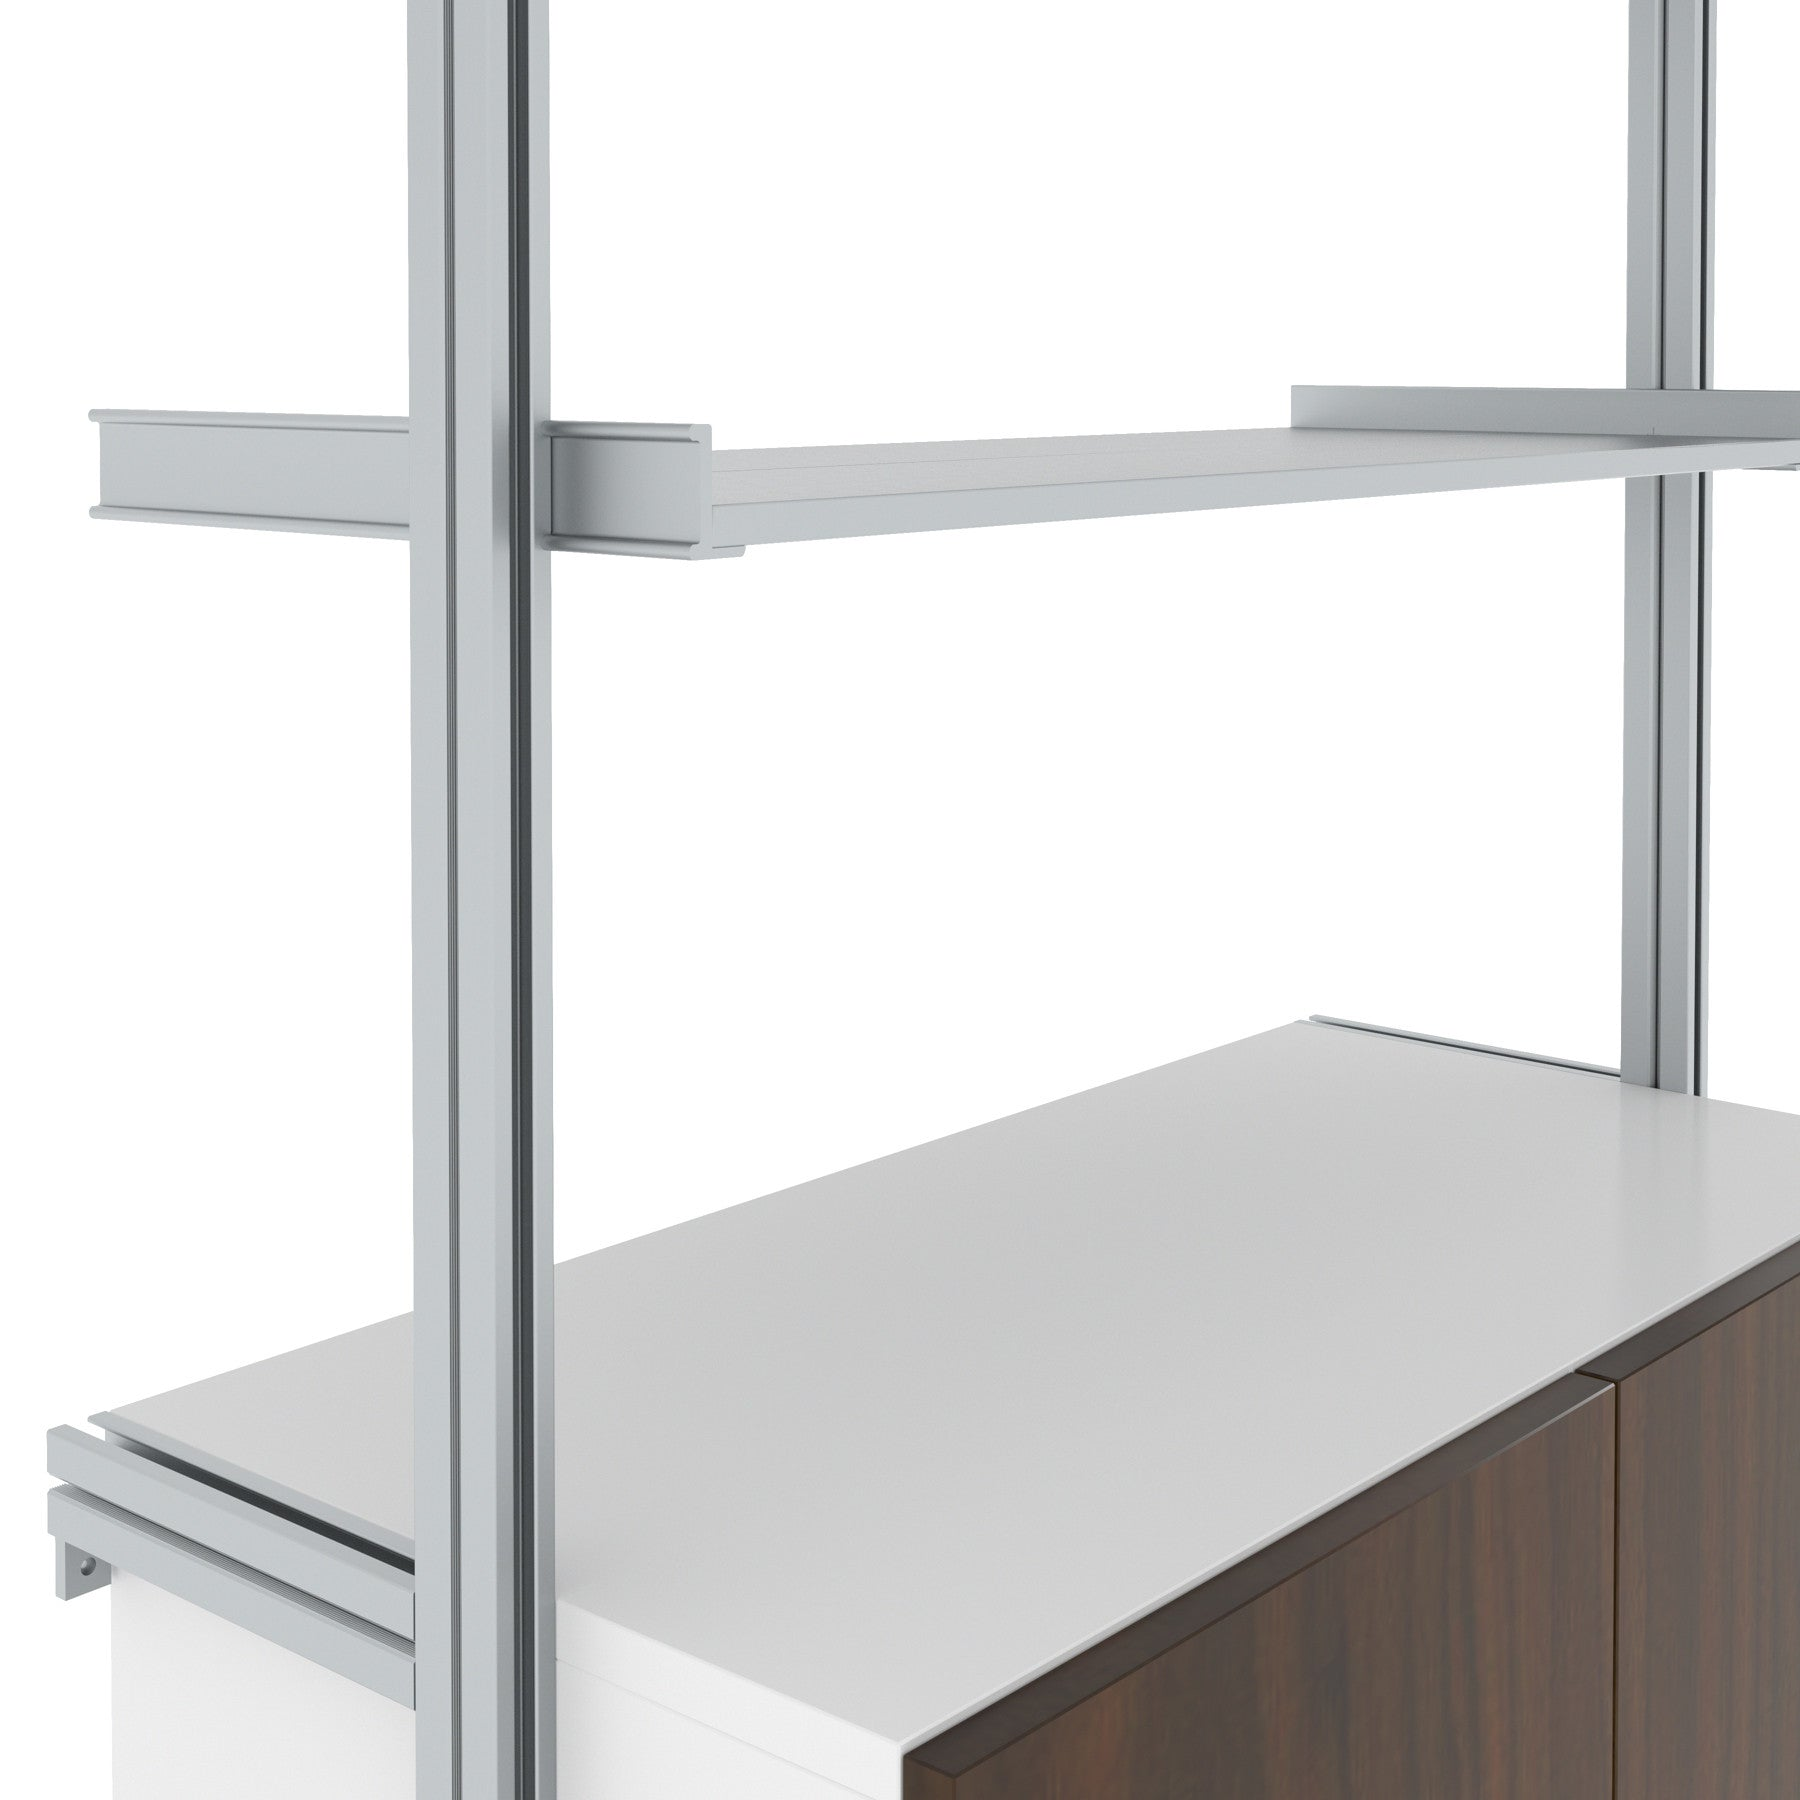 SALE ITEM - Laundry Room PAL Aluminum Shelving